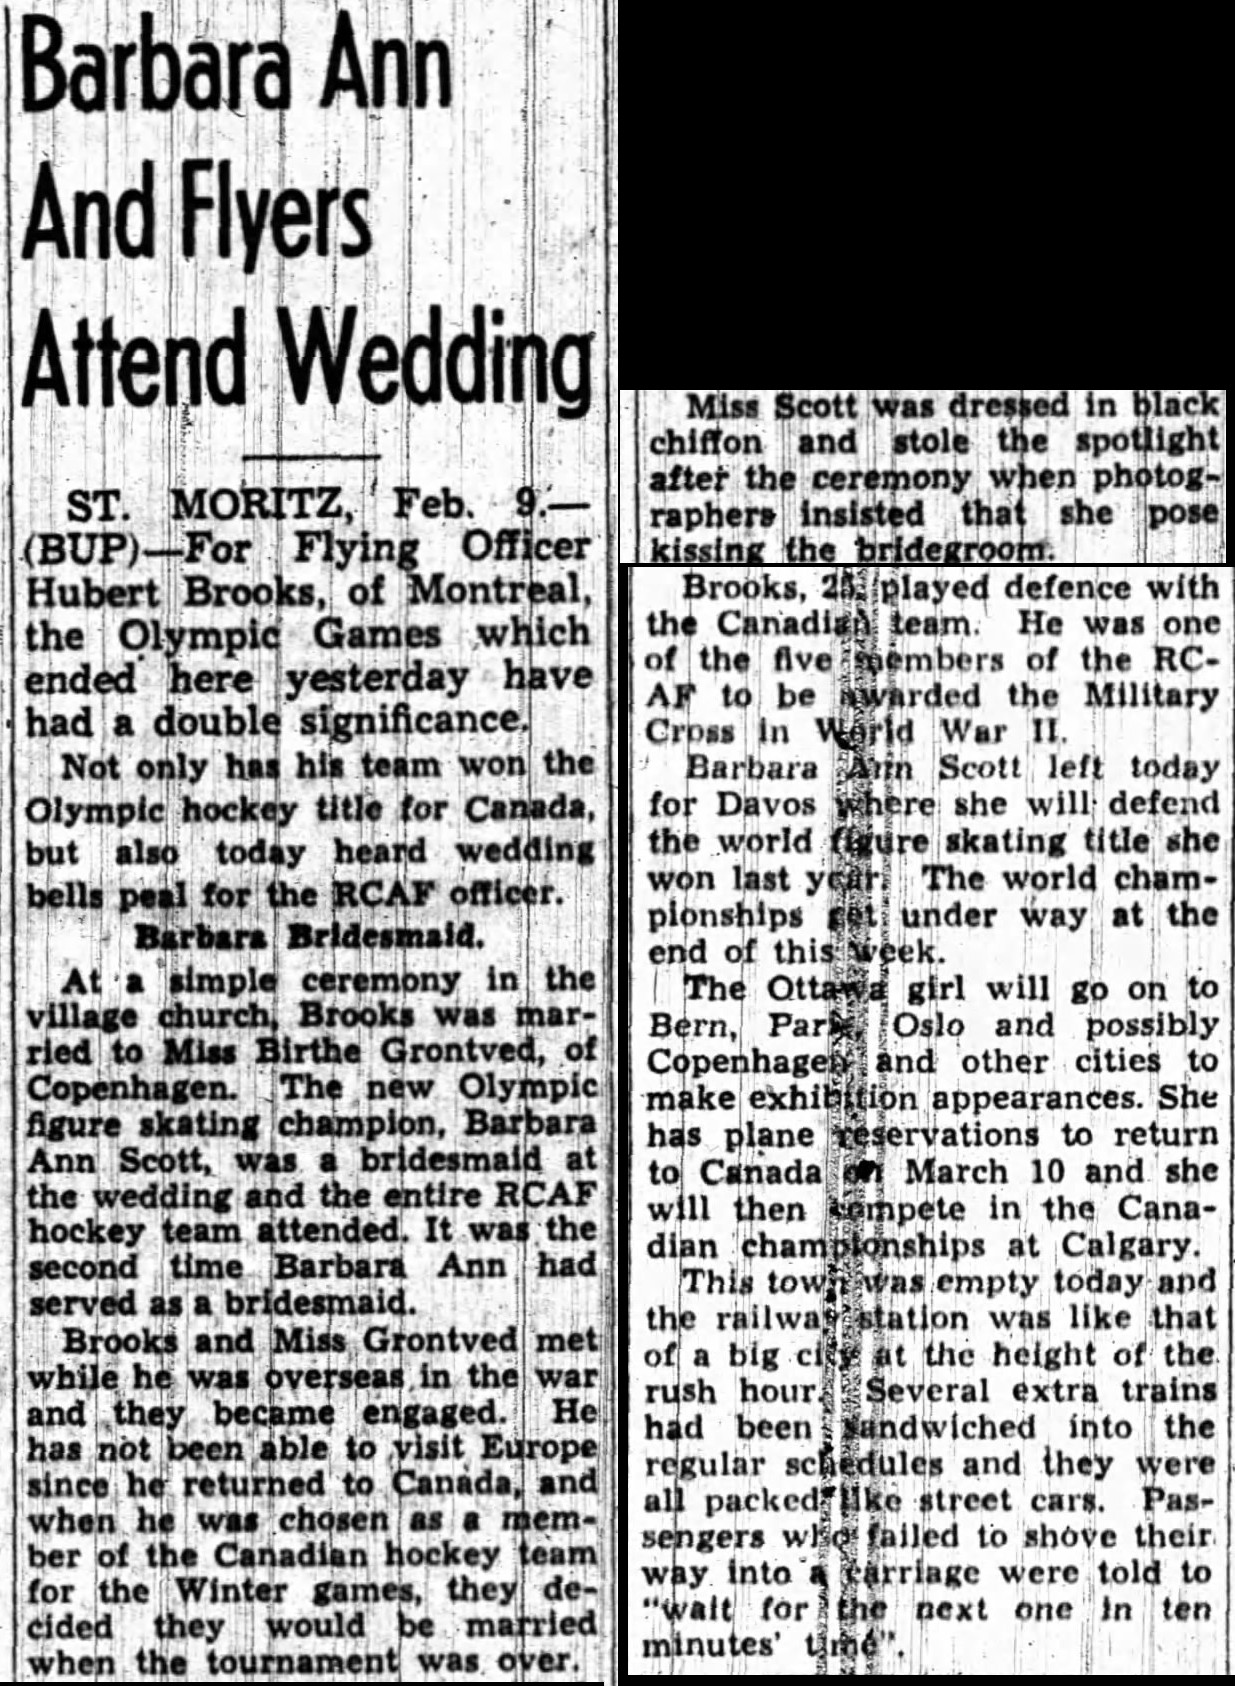 Image: Newspaper Article on Hubert Brooks wedding to Birthe Grontved in St Moritz